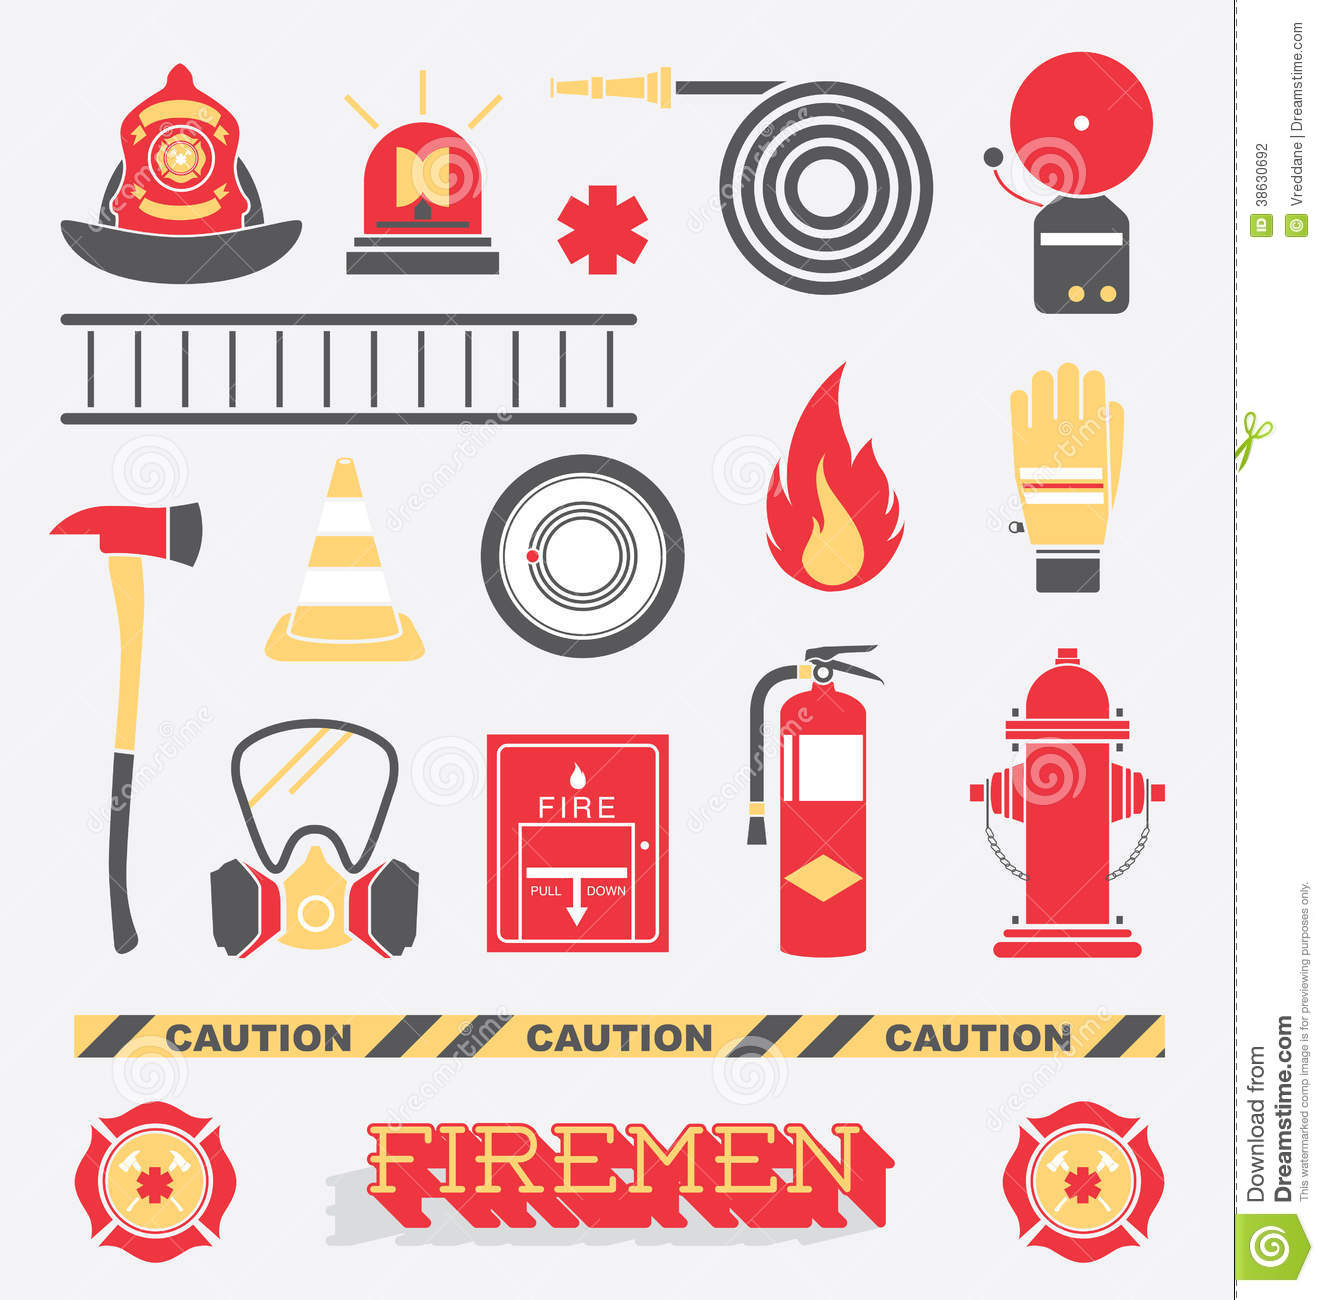 Vector Set: Firefighter Flat Icons and Symbols